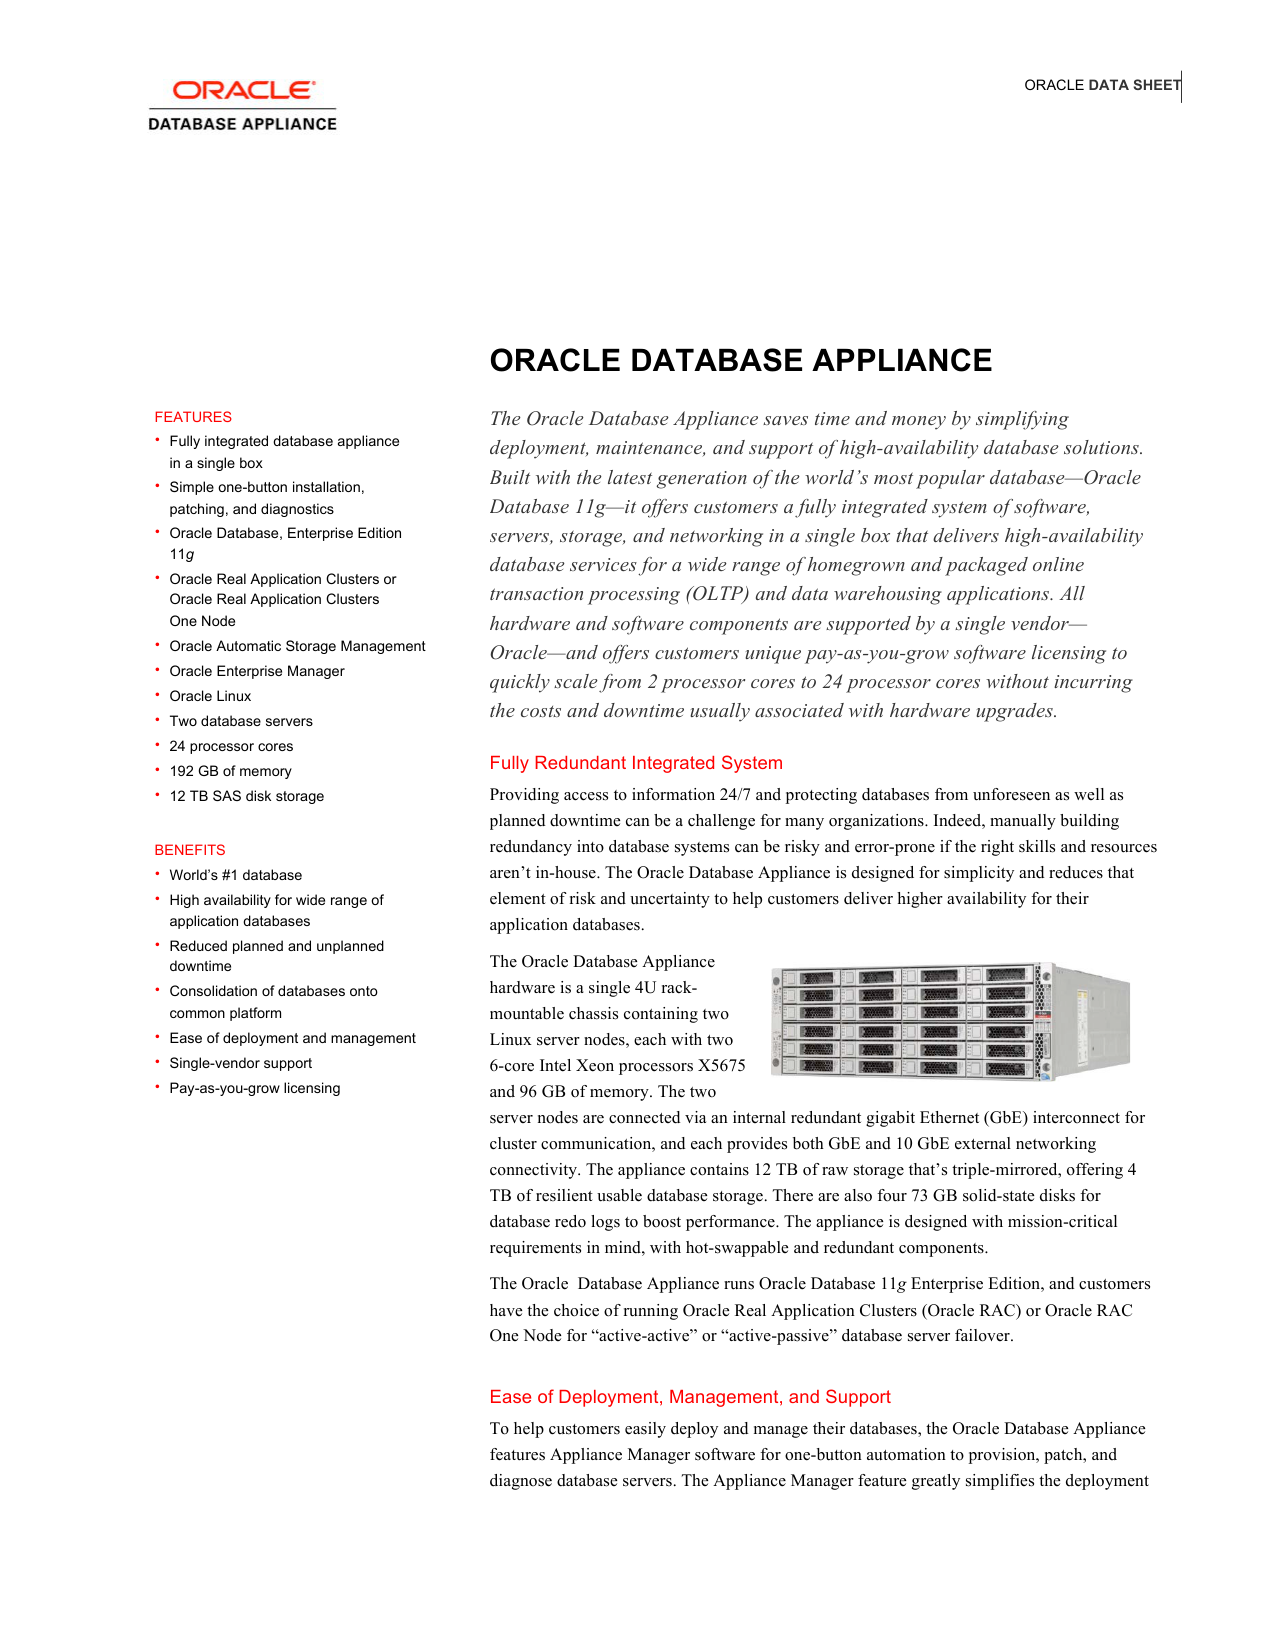 Oracle Database Appliance Data Sheet